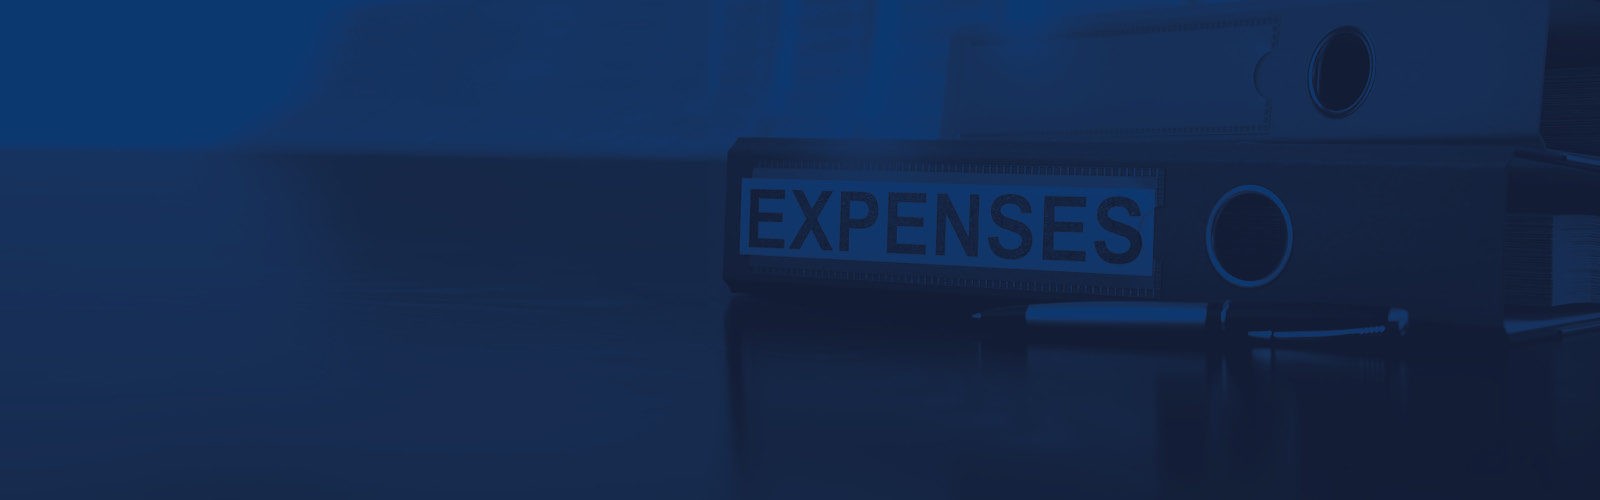 course_header_P11d expenses and benefits.jpg